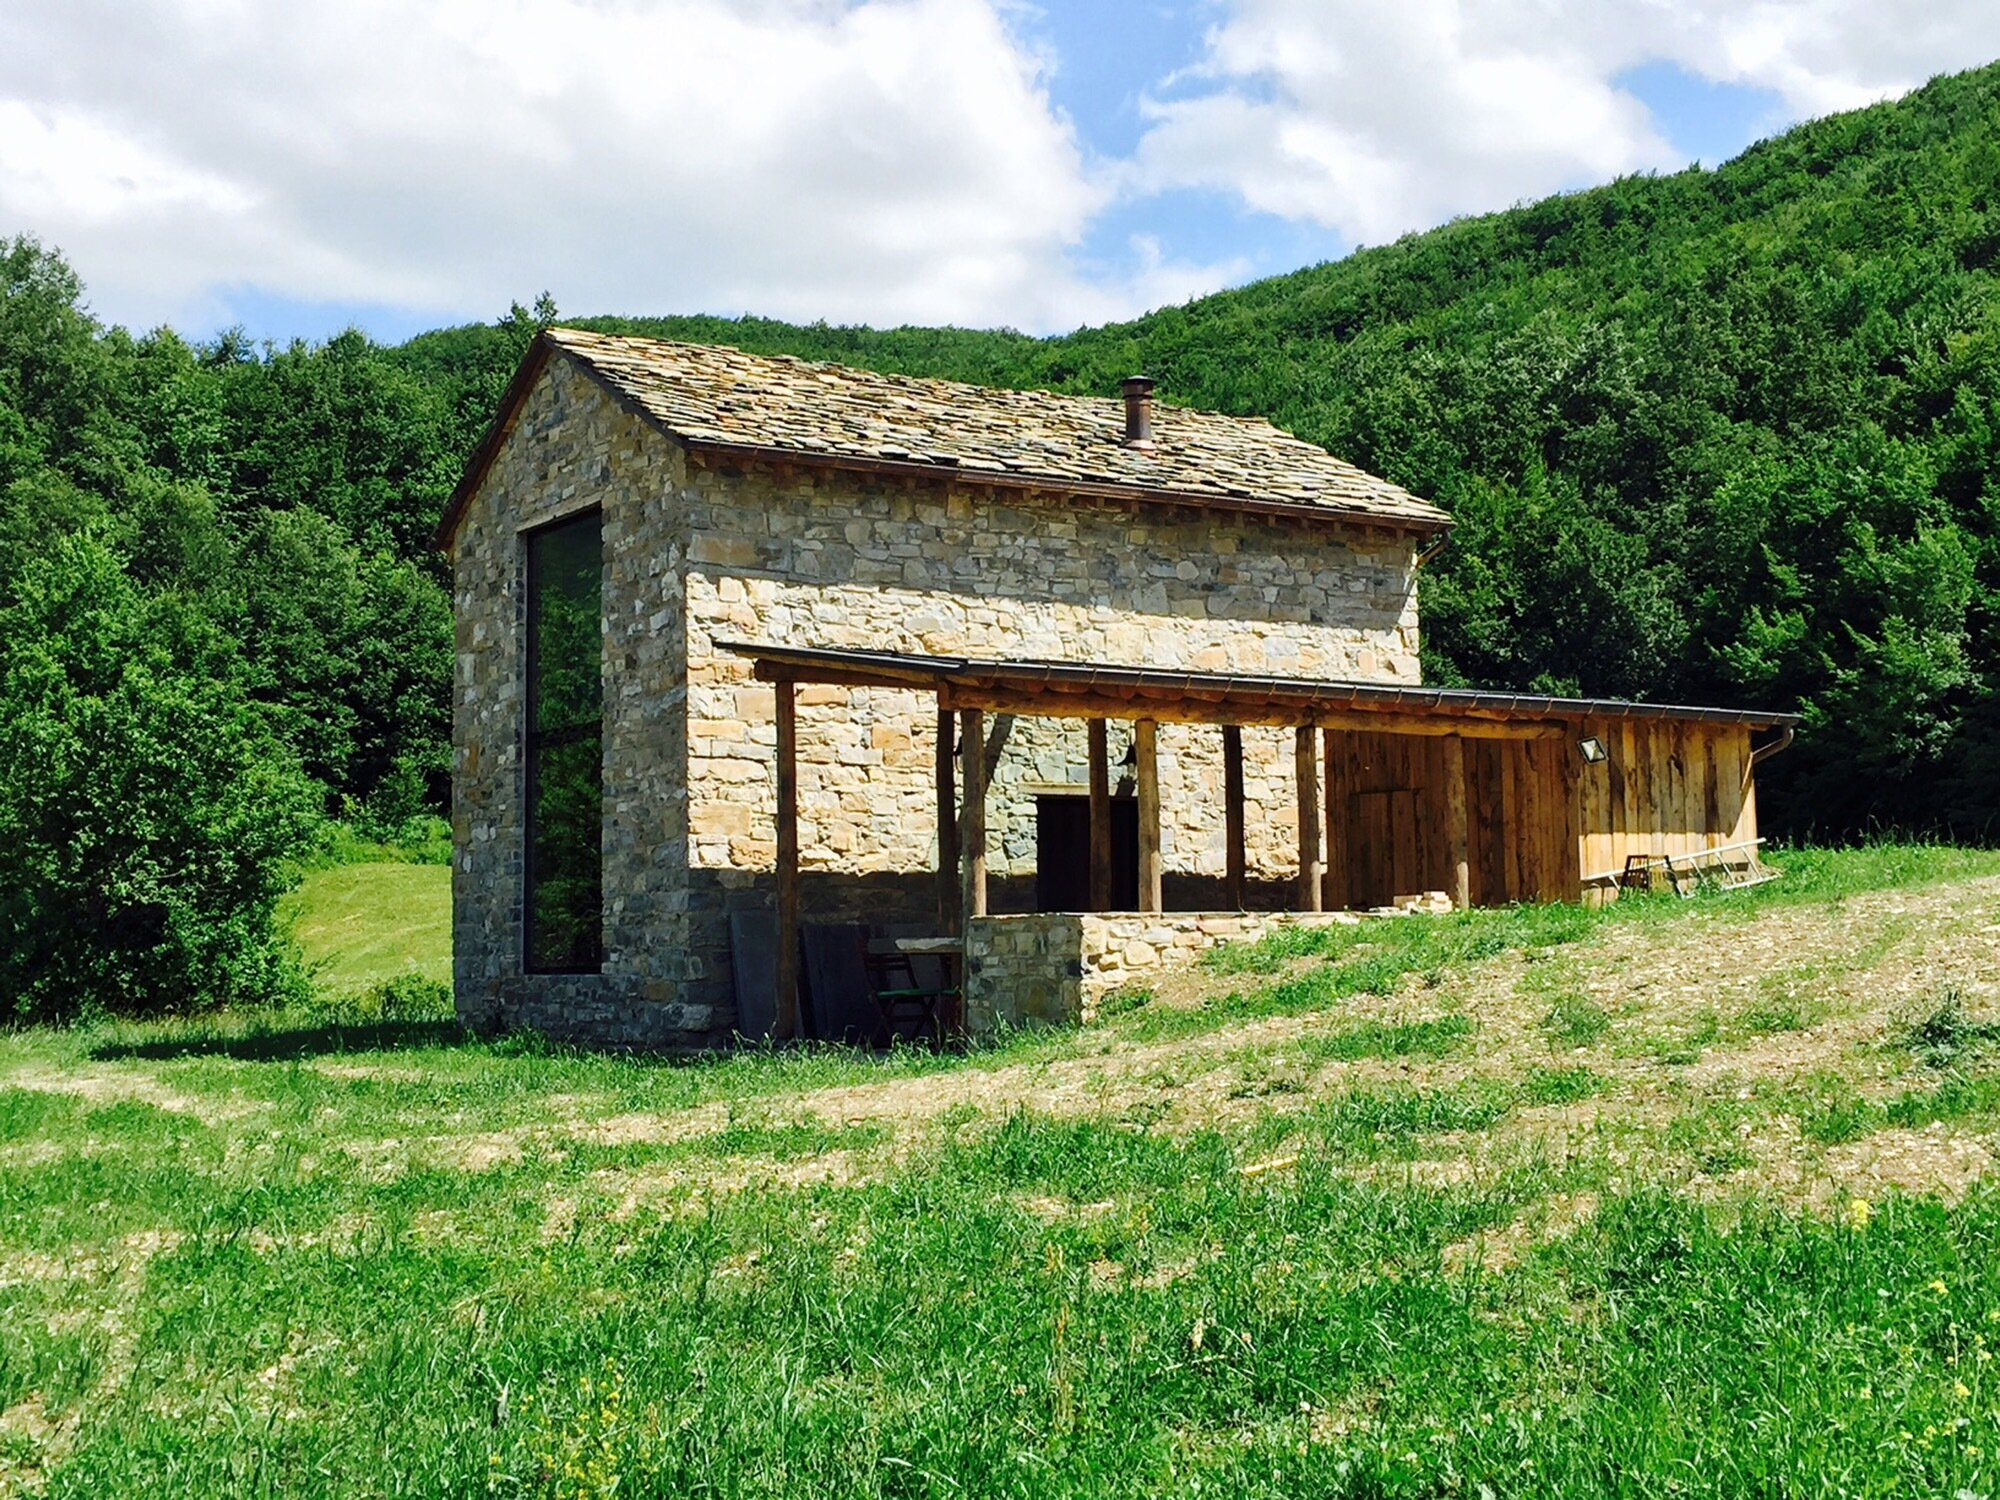 Cottage Restoration - Studio Contini - Italy - Exterior - Humble Homes